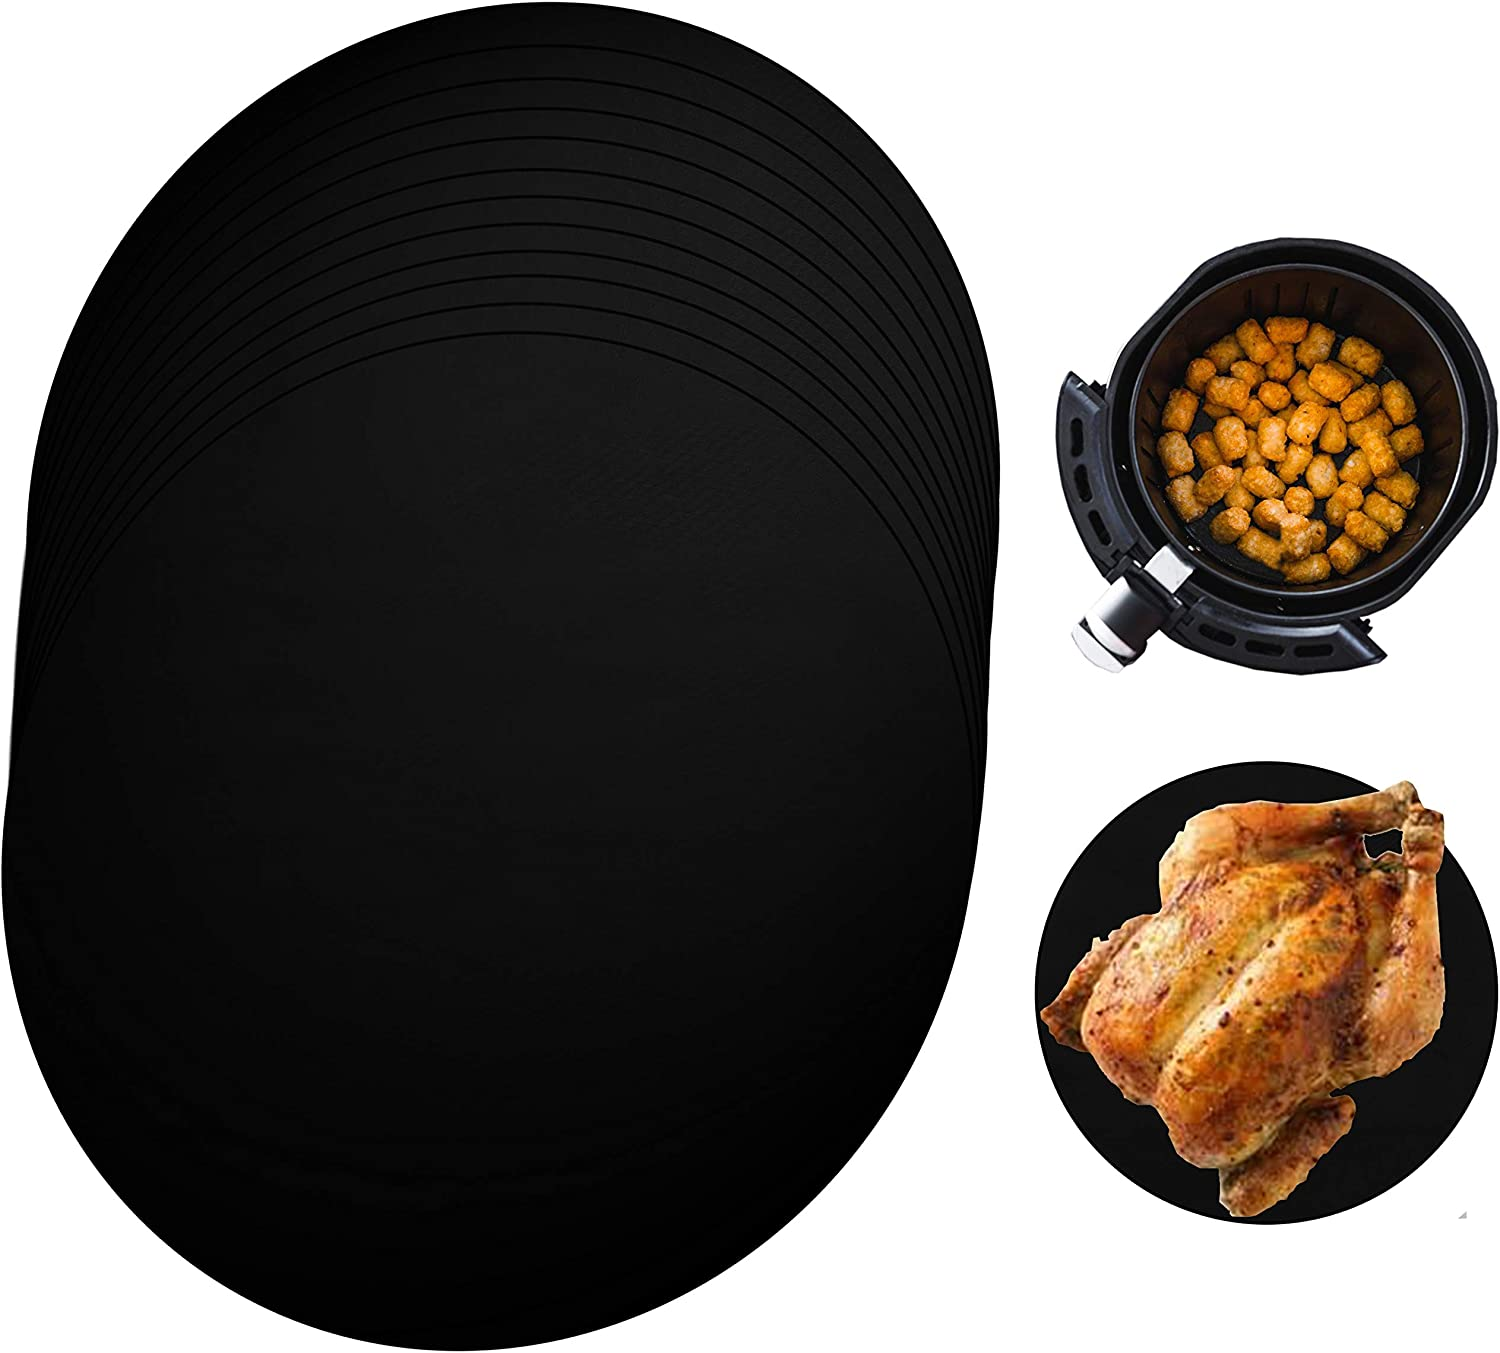 Amestar 12 Pack Reusable Air Fryer Liners Mat 9 Inch,Non-stick Basket Mat, Perfect for 5.3 & 5.8 QT Air Fryers/Steaming/Baking/Cooking/Grilling-Black,Round